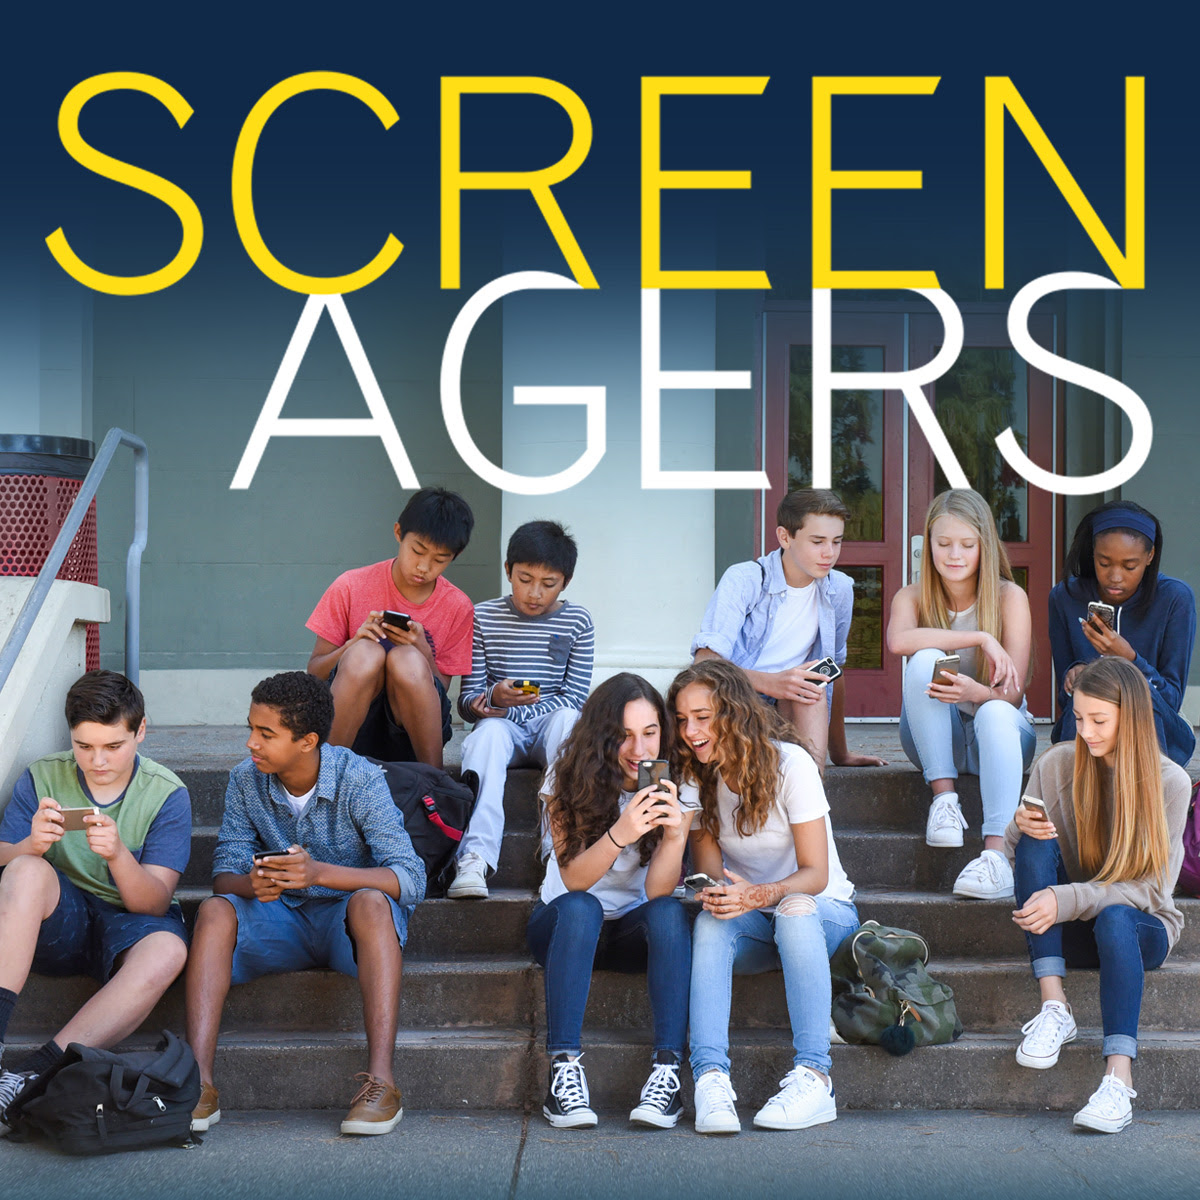 Screenagers Film Presented By Sandcreek Middle School